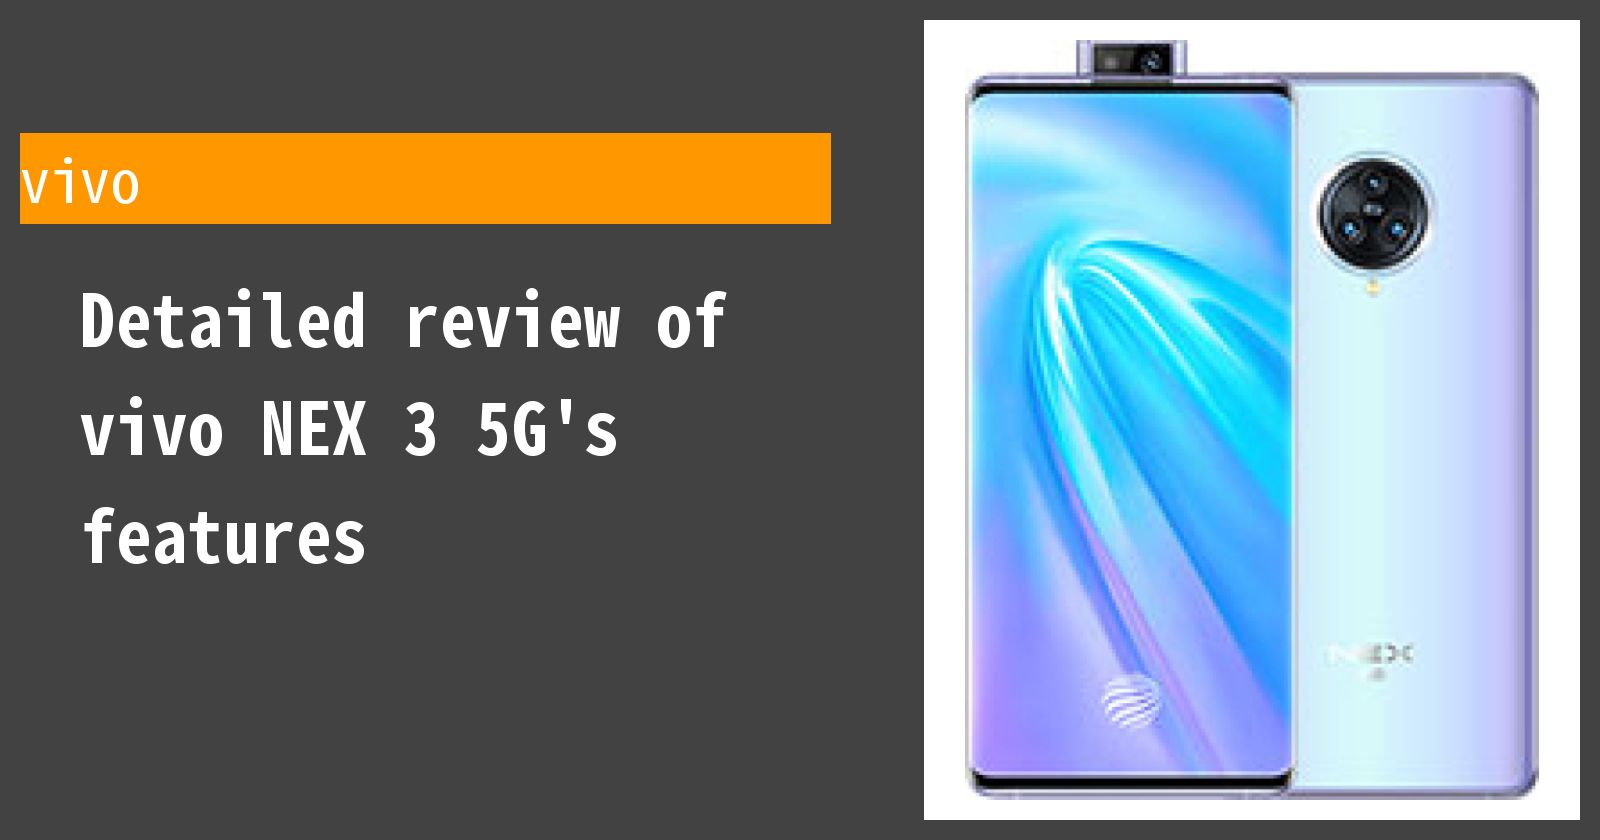 Detailed review of vivo NEX 3 5G's features